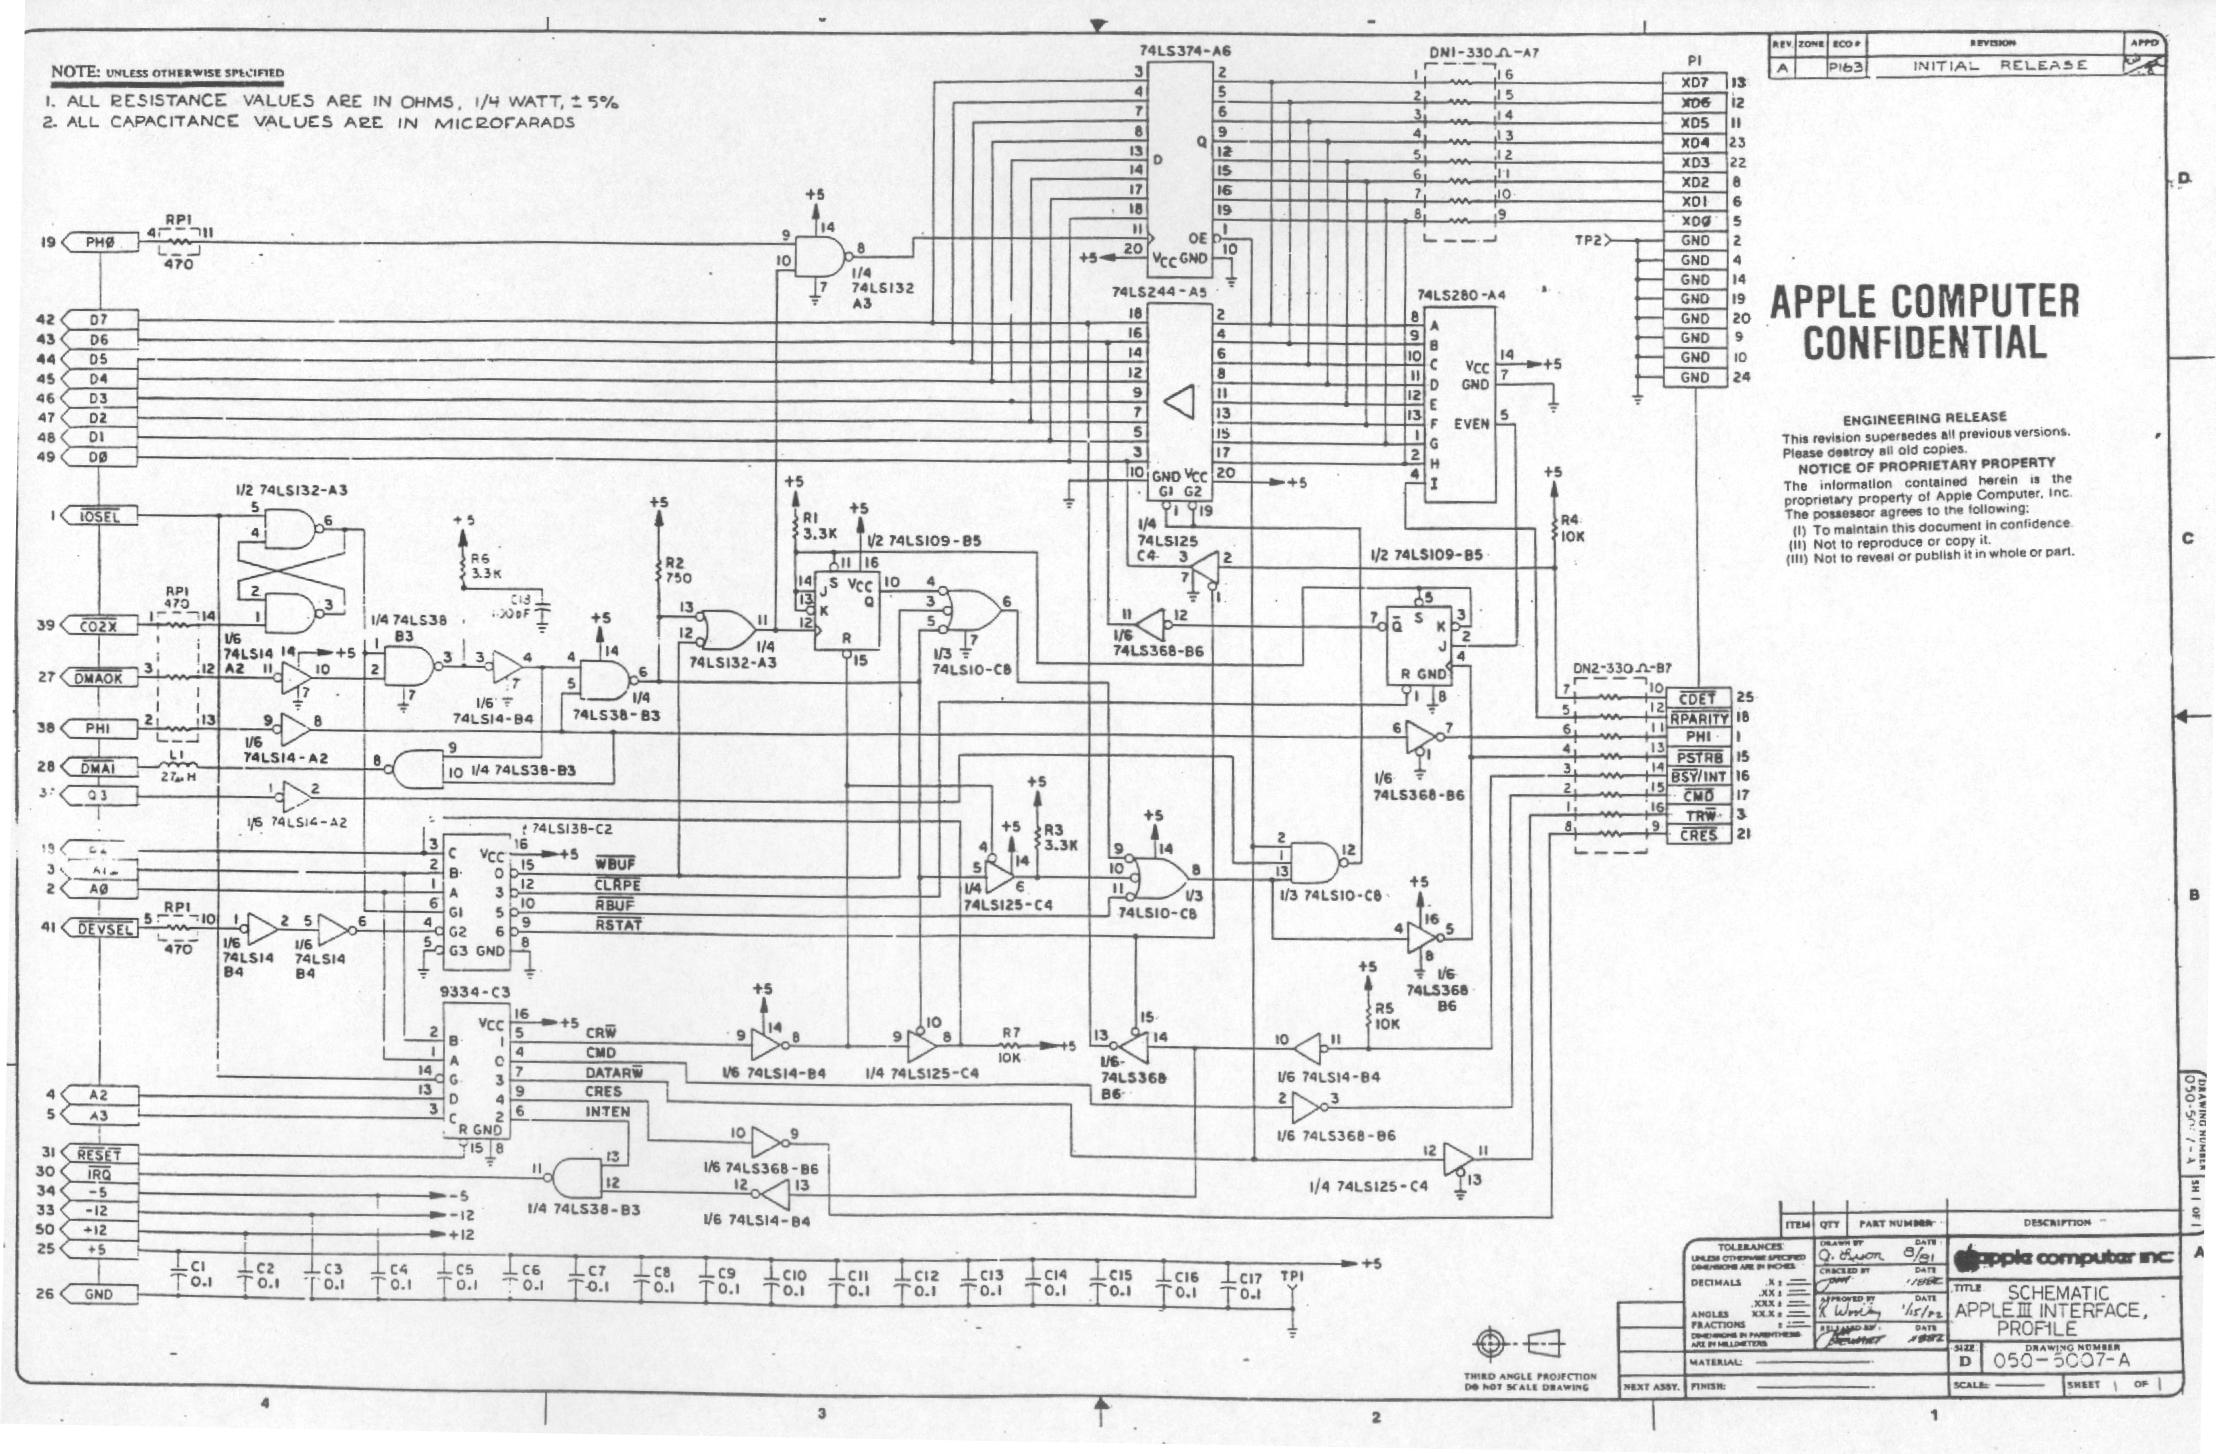 Apple Wiring Diagram Diagrams One Blaupunkt Simple Schema Car 1 Circuit Library